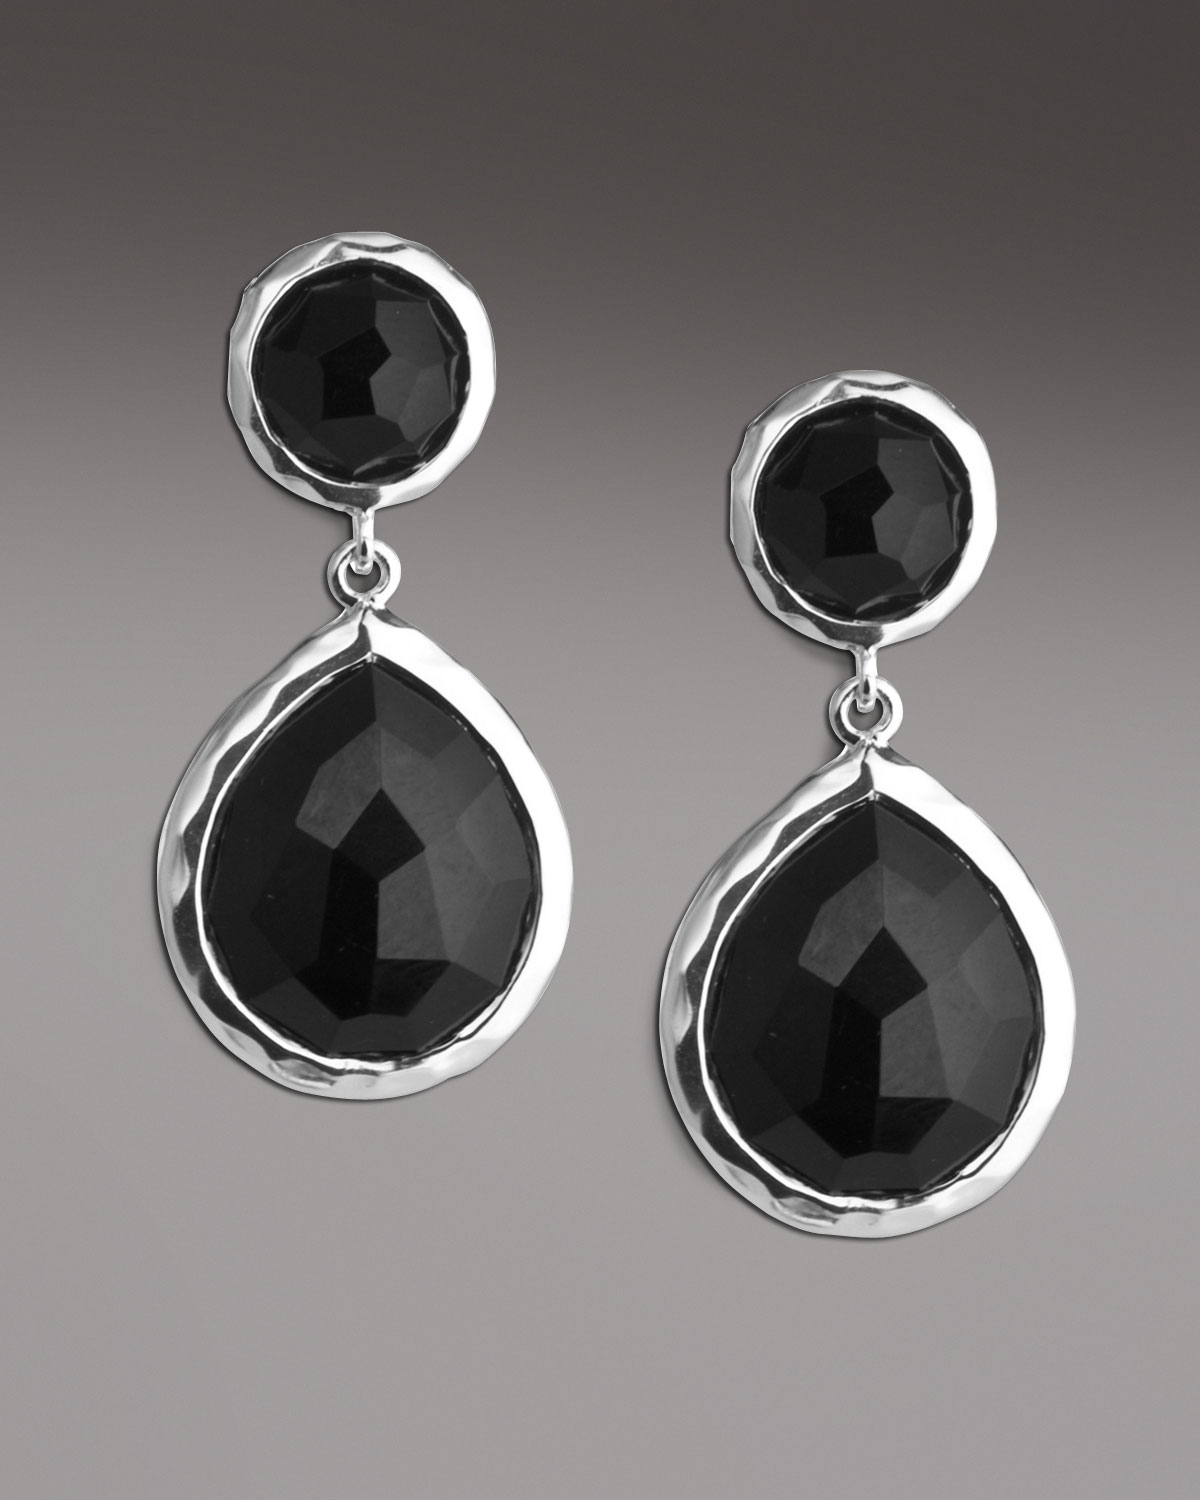 214d575c2df718 Black And Silver Drop Earrings Marcasite And Black Onyx Elongated ...